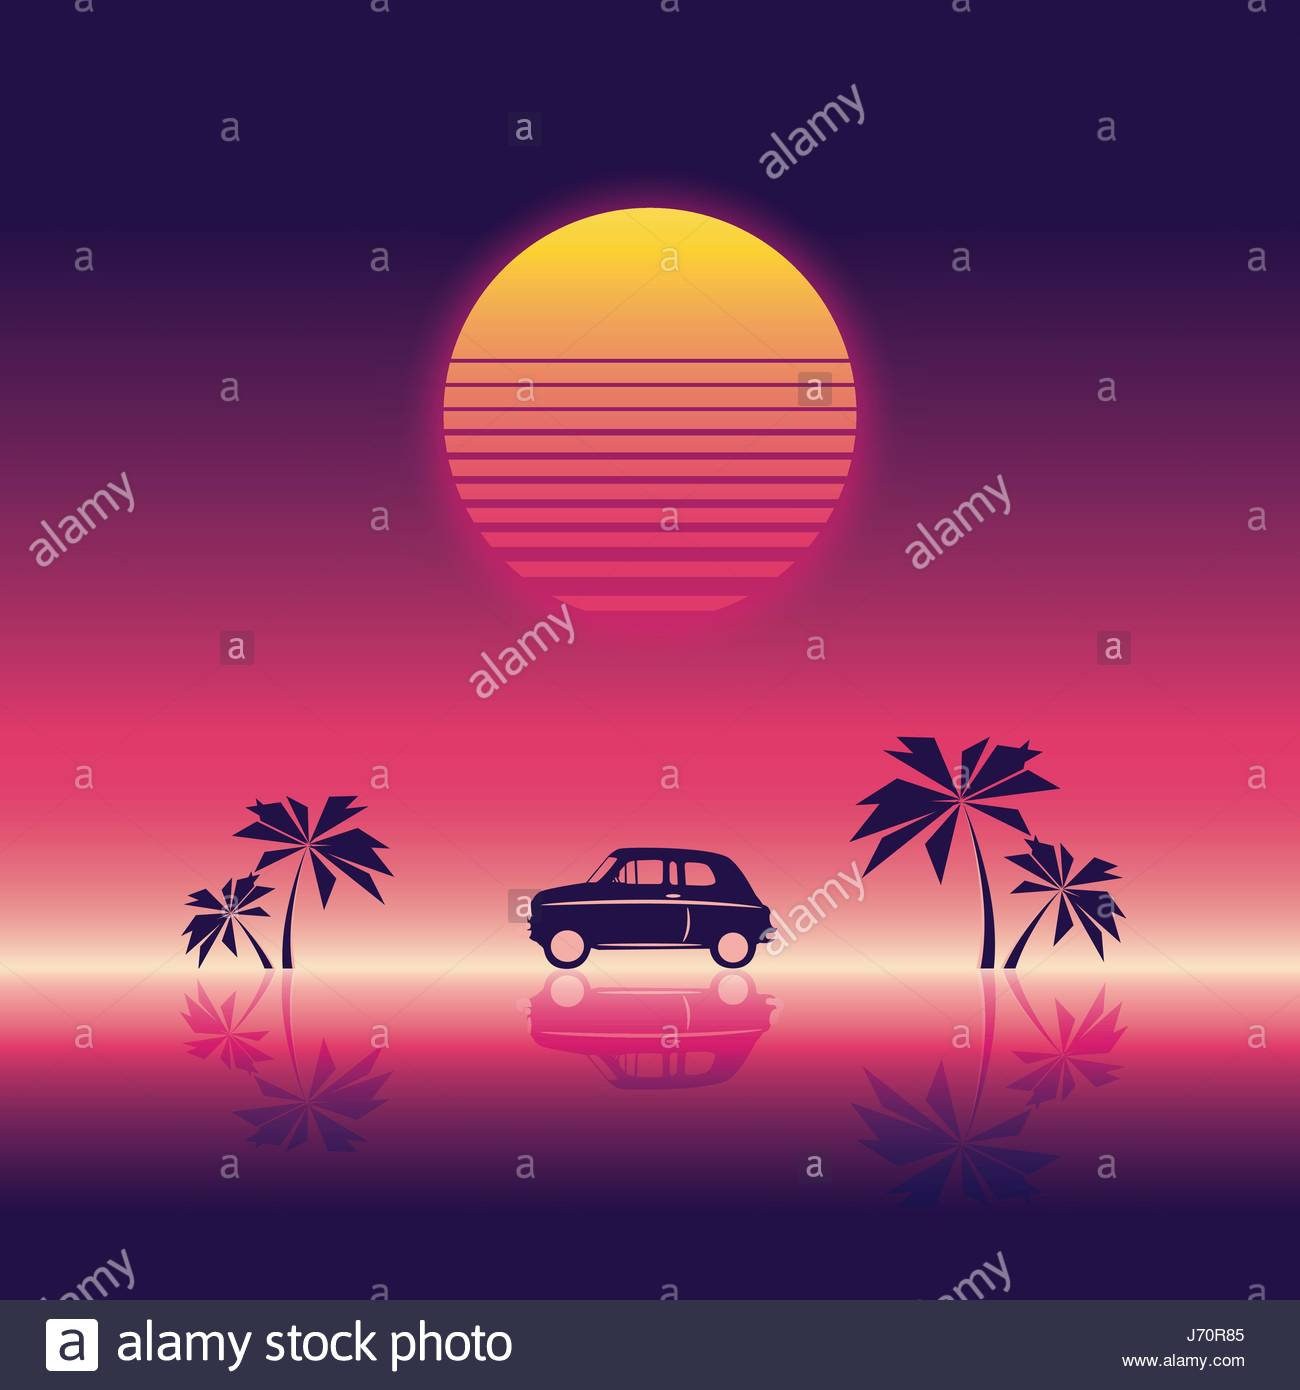 Beach Party Poster Vector Illustration Template With Sunset And Palm Trees Small Car 80s Neon Vintage Retro Style